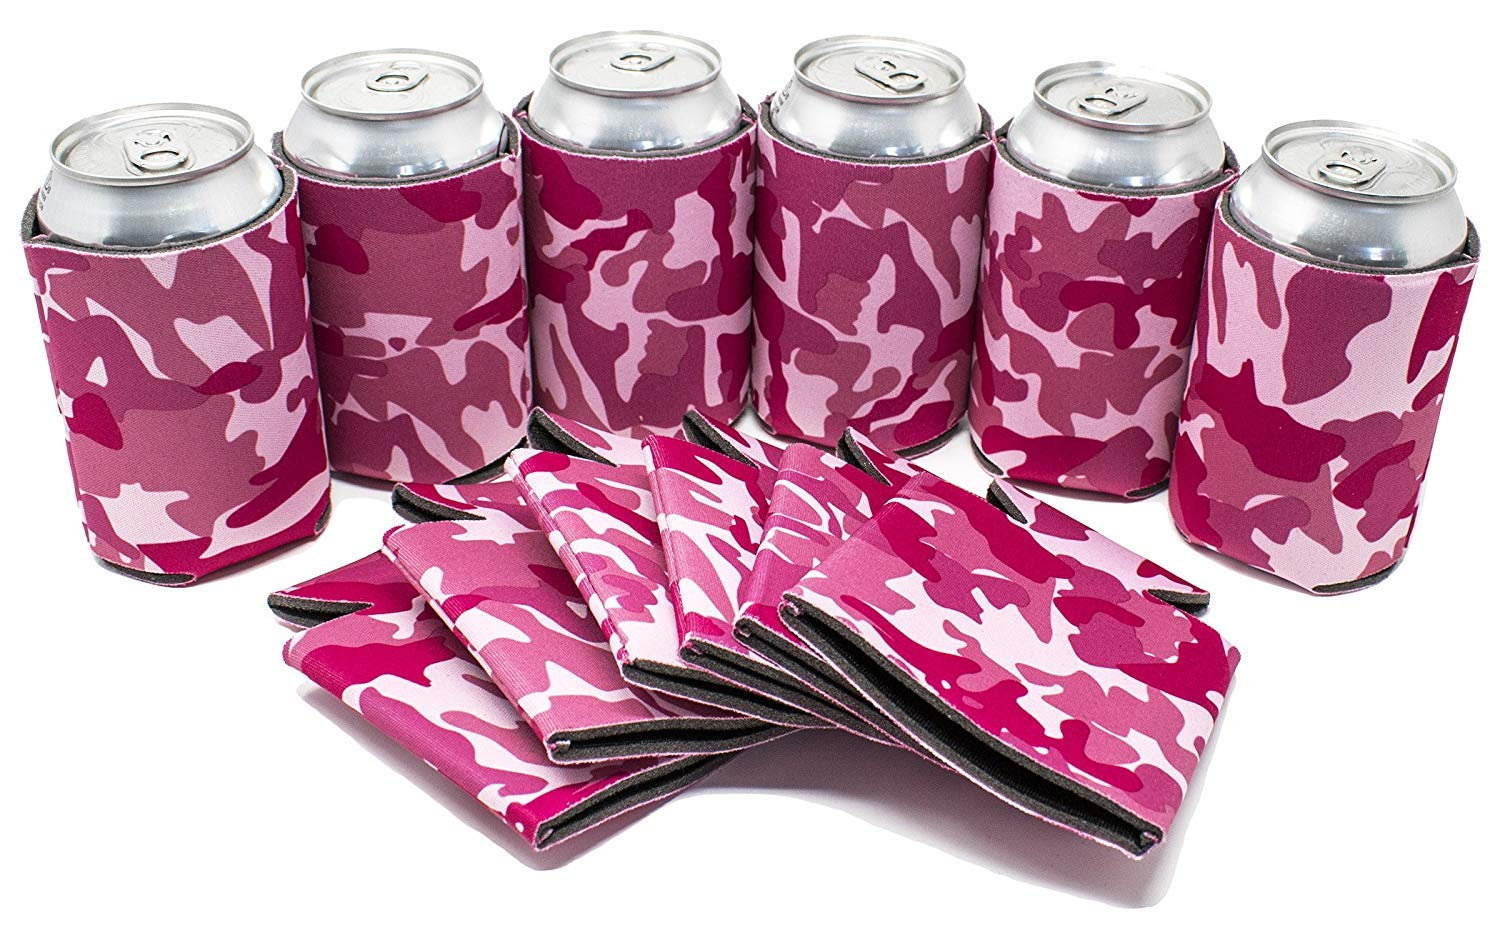 TahoeBay 12 Blank Beer Can Coolers, Plain Bulk Collapsible Soda Cover Coolies, DIY Personalized Sublimation Sleeves for Weddings, Bachelorette Parties, Funny HTV Party Favors (Pink Camo, 12)